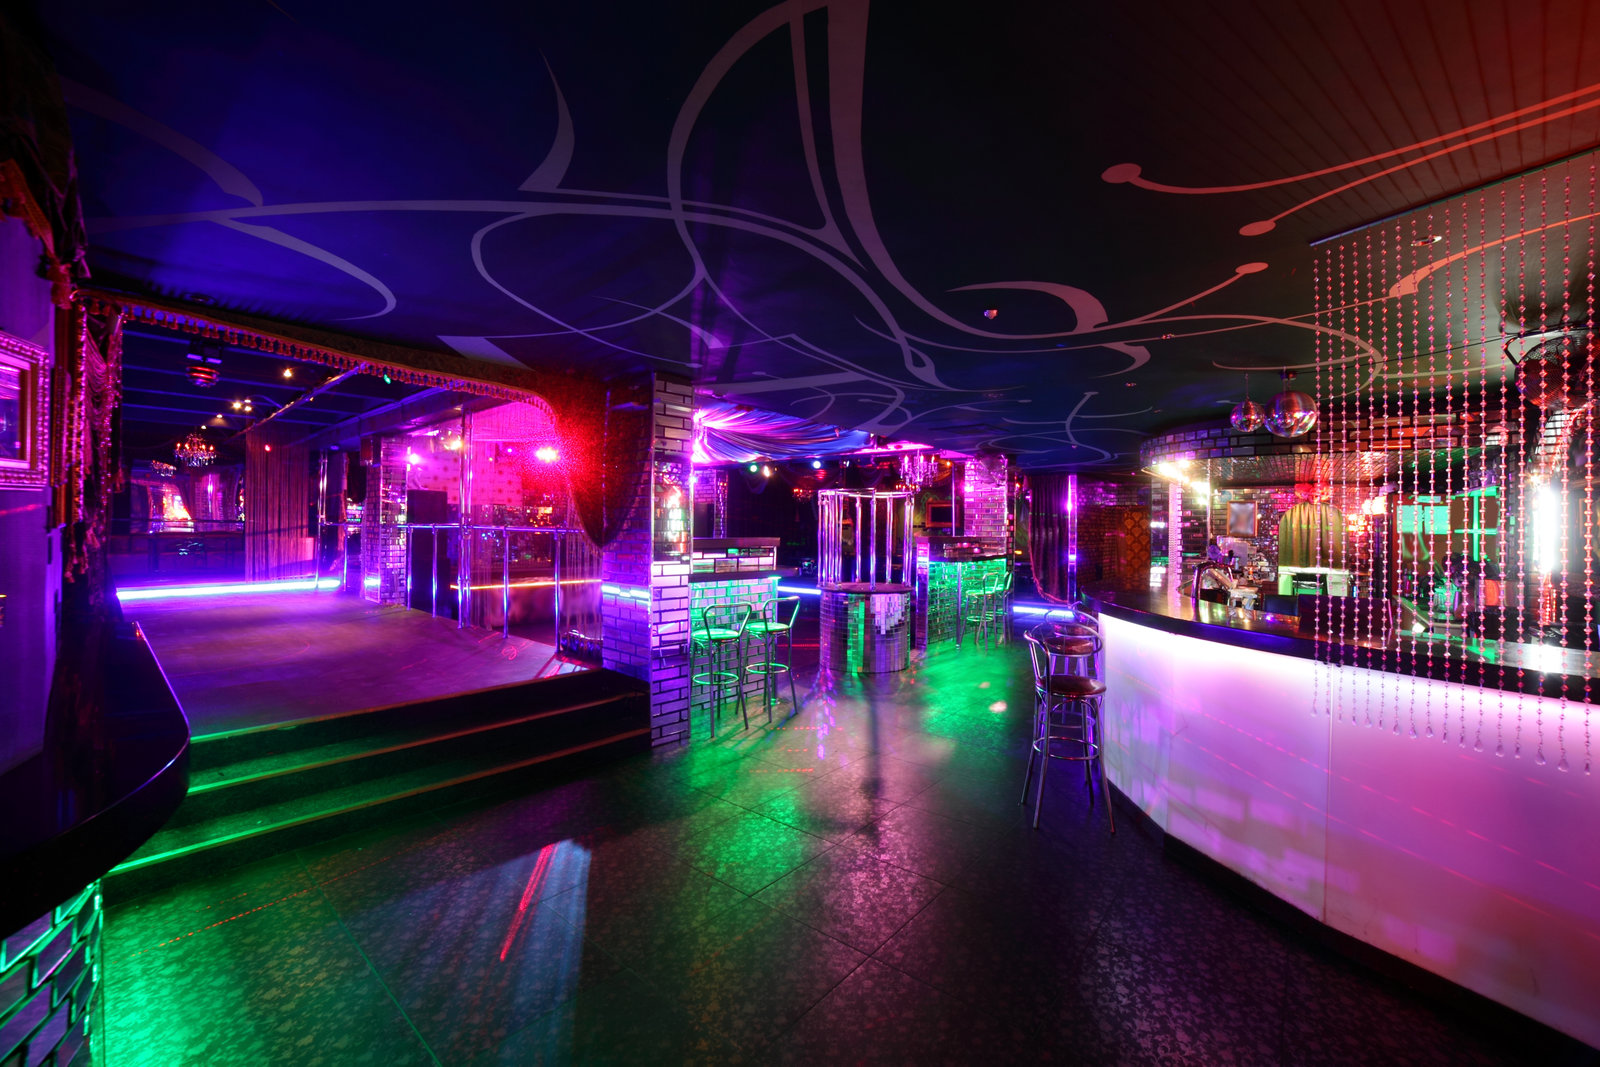 Entertainment Risk Hospitality Insurance Program Offerings colorful interior of bright and beautiful night club